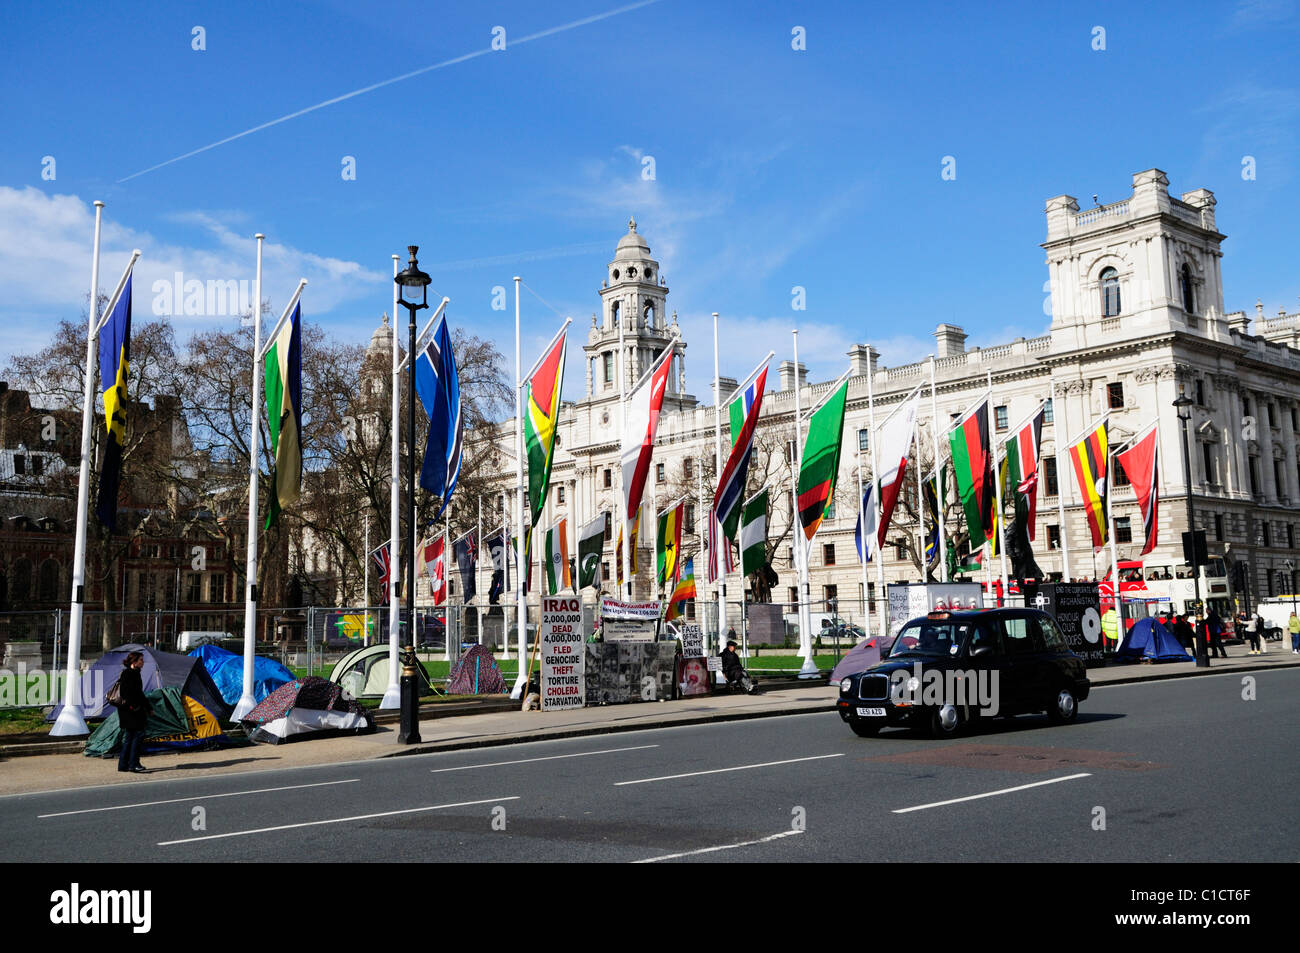 Parliament Square with Anti War Protestors and Flags, Westminster London, England, UK - Stock Image